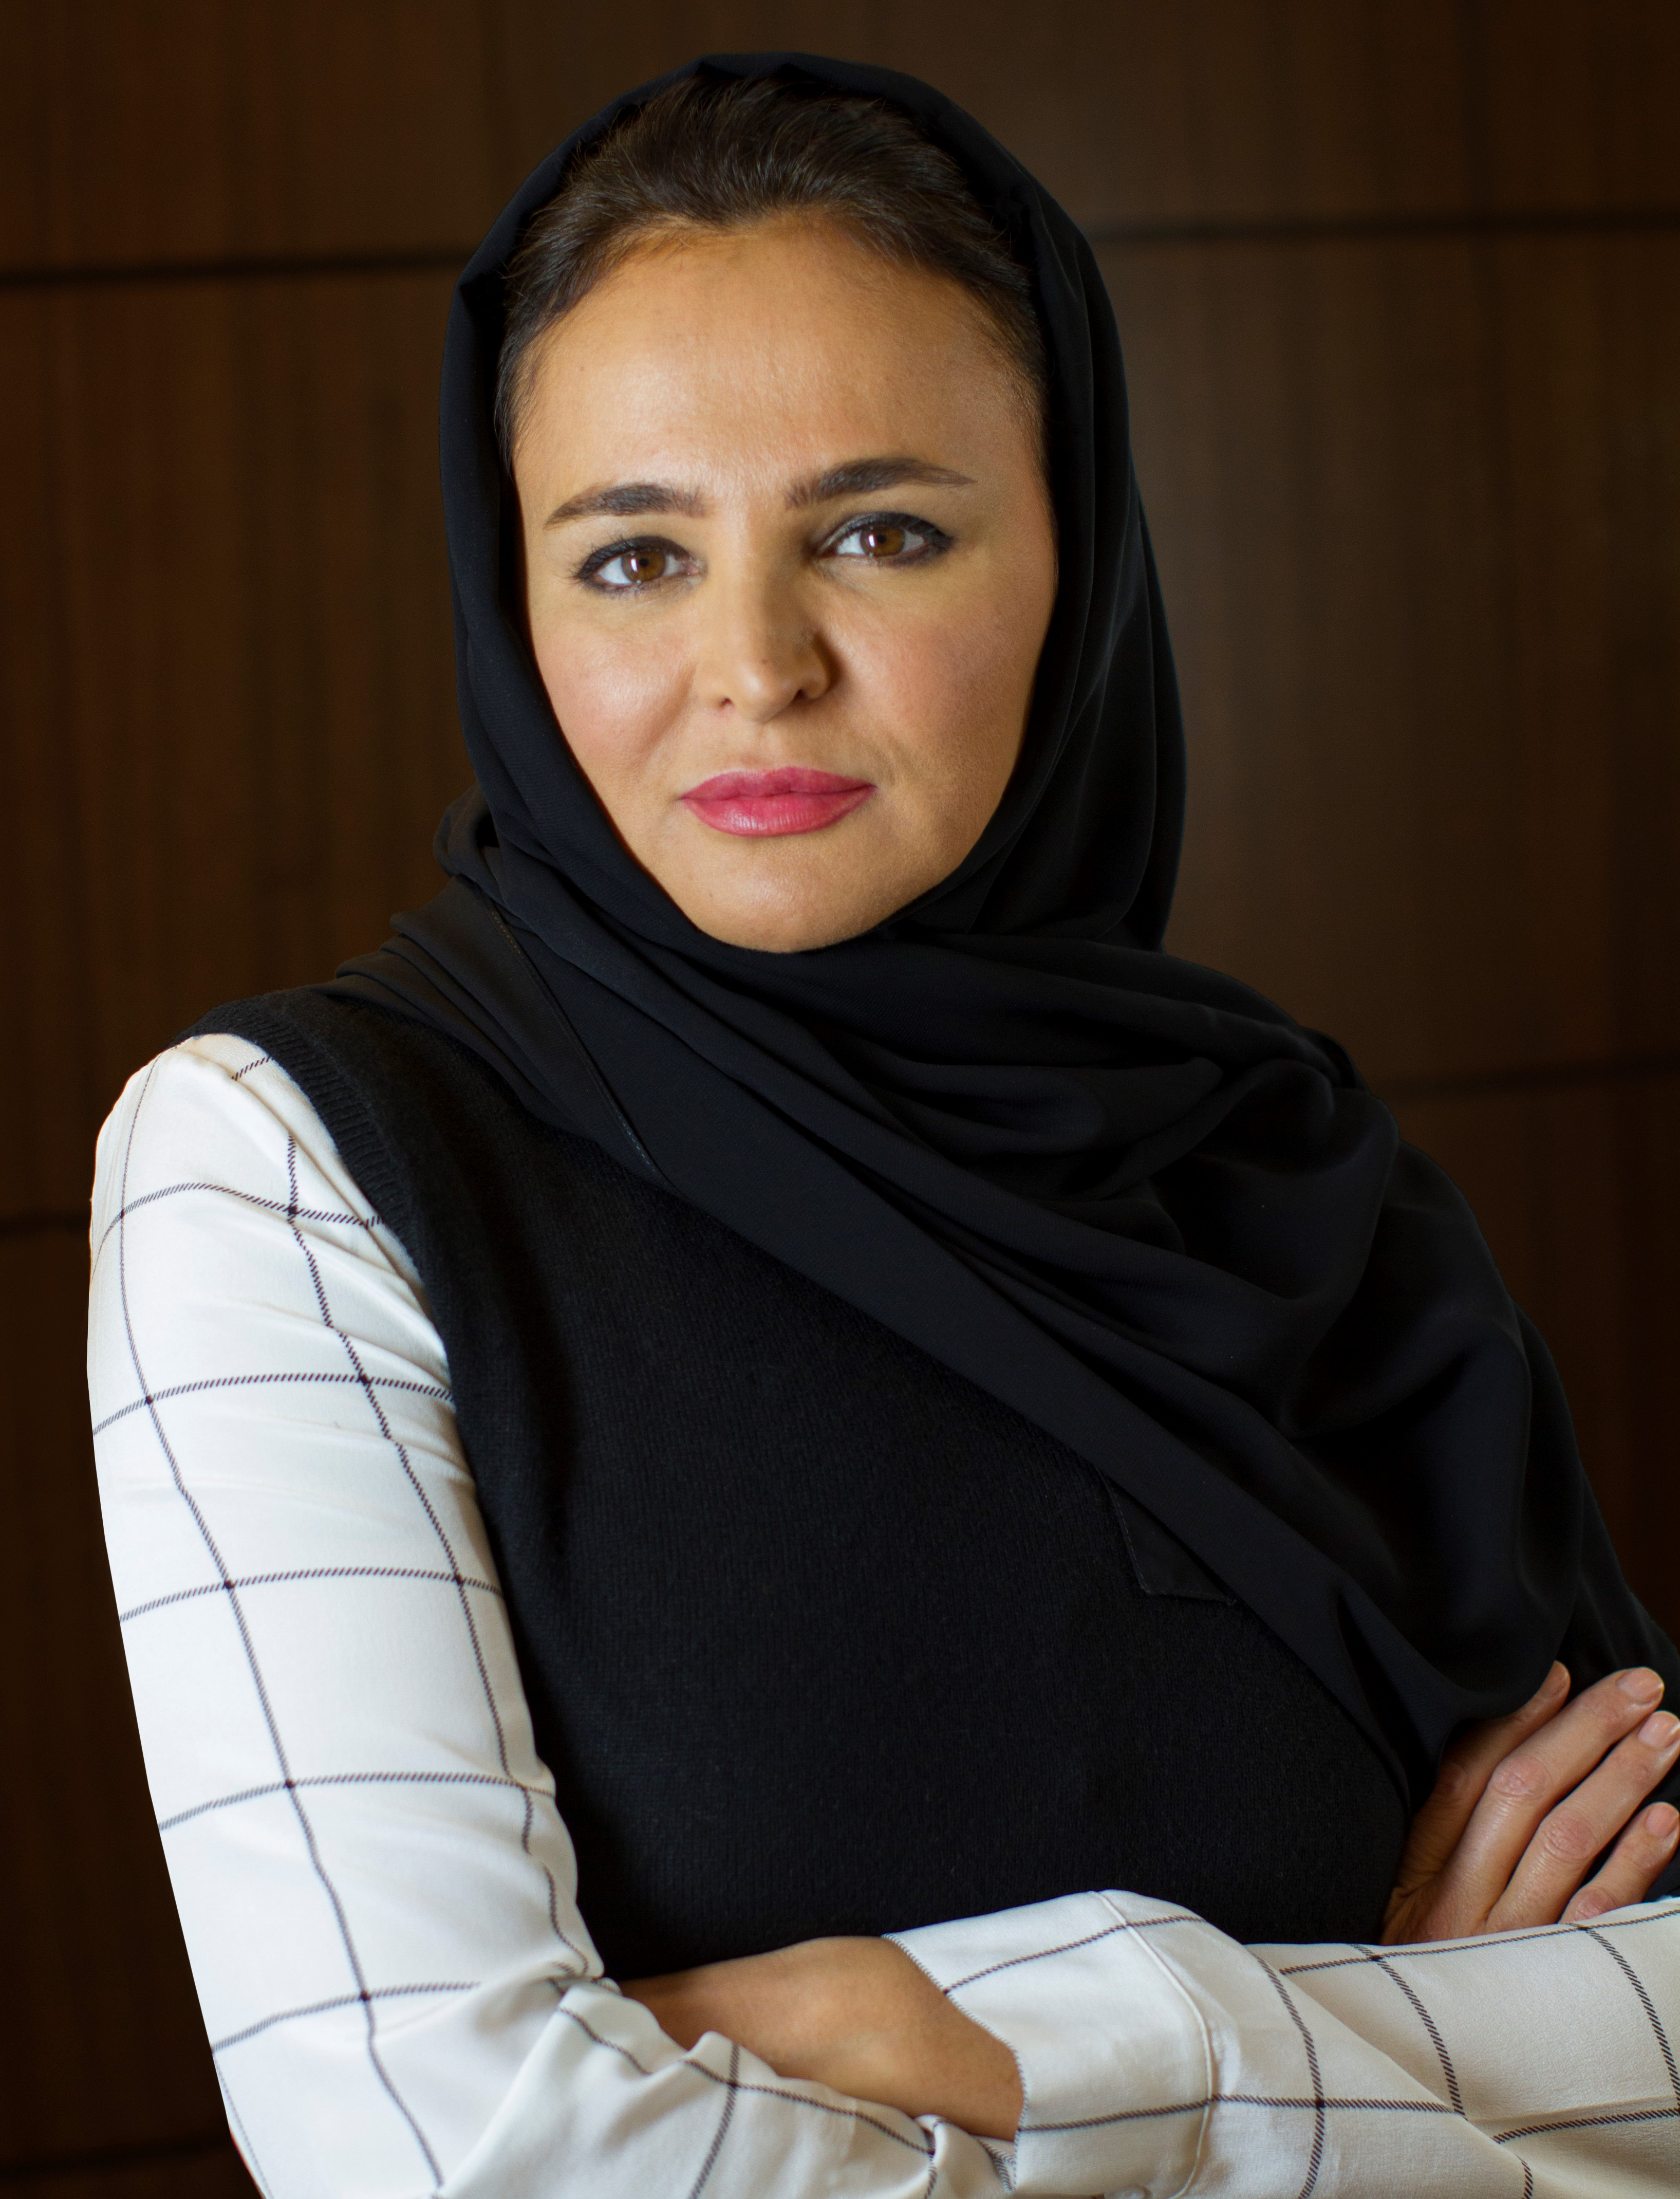 Sheikha Hanadi Bint Nasser Al Thani Recognized at Global Influential Leaders' Awards